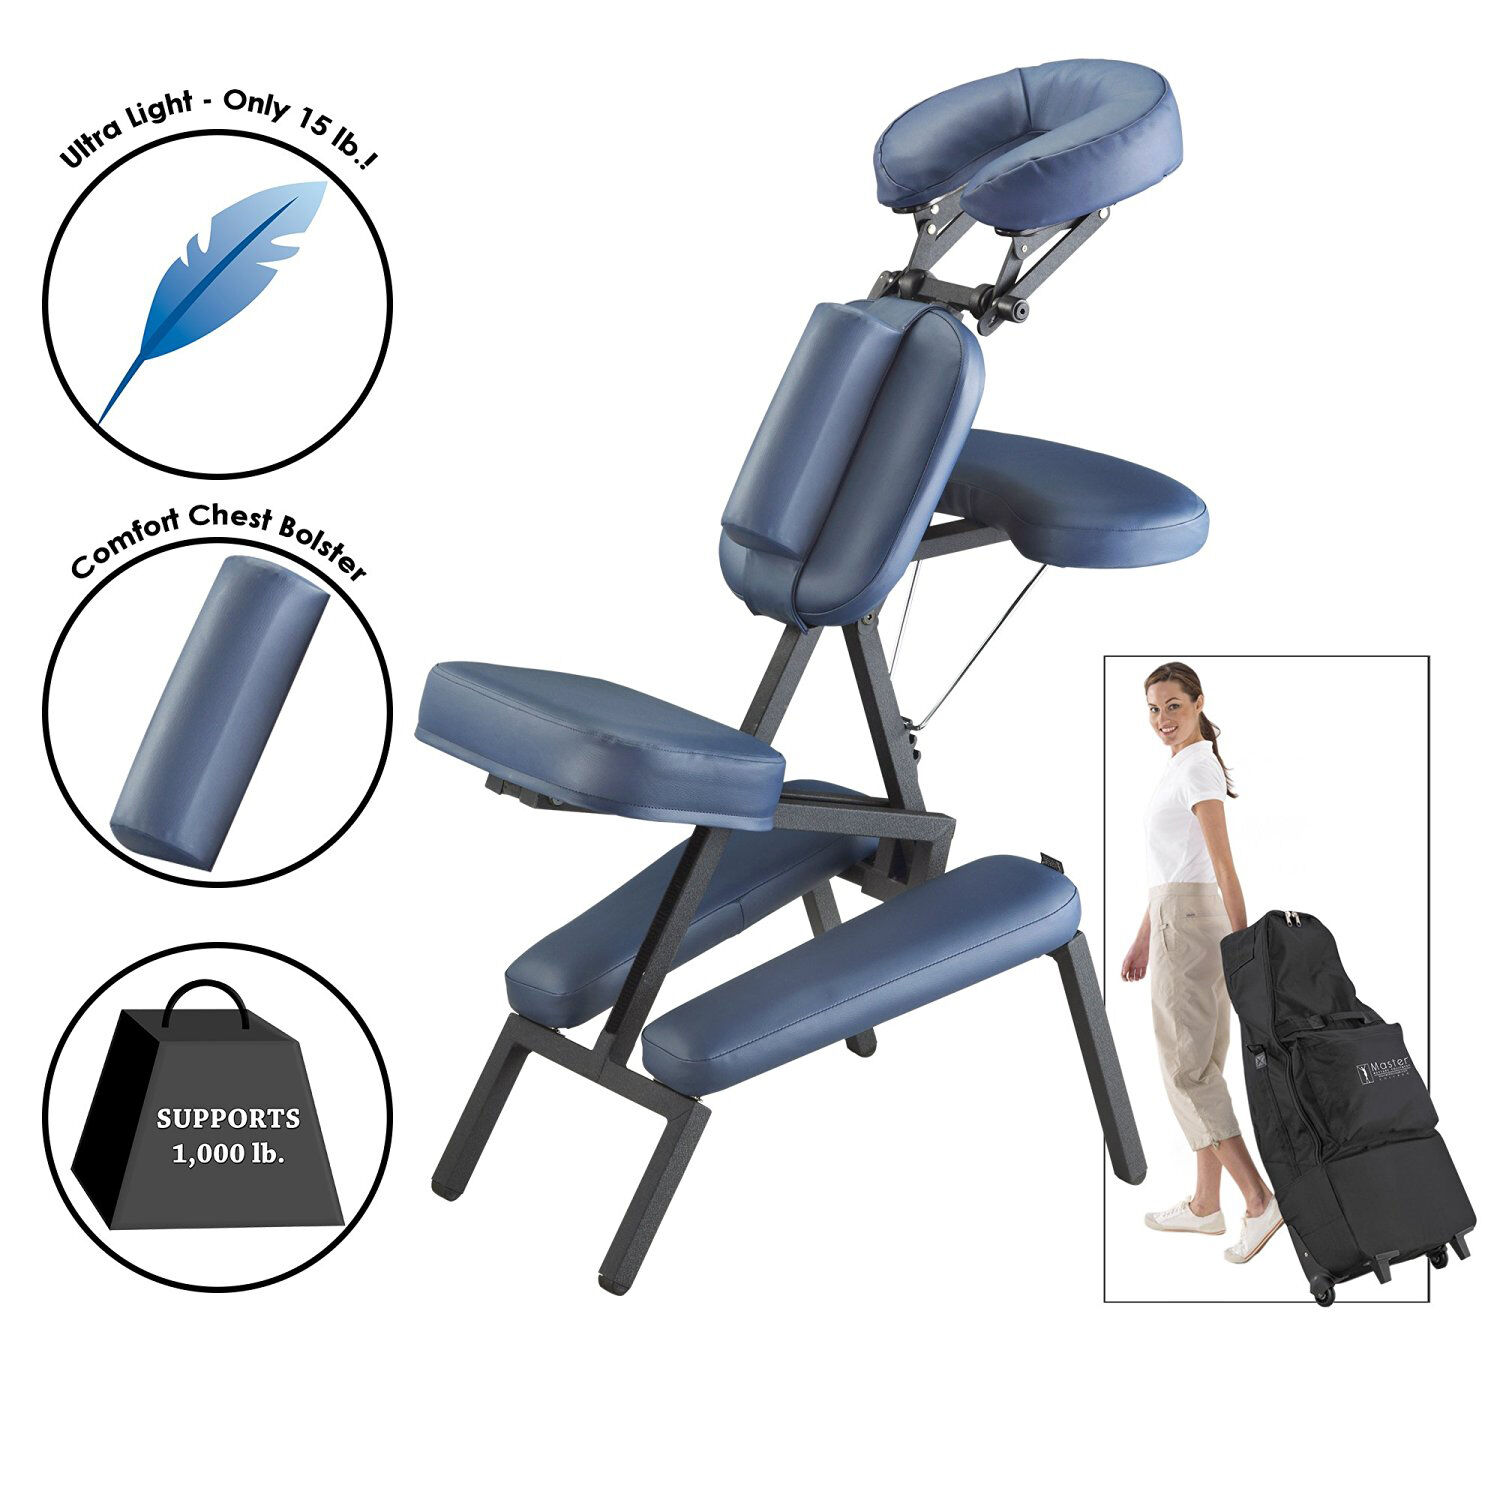 Portable Massage Chair Light Weight Professional Therapy